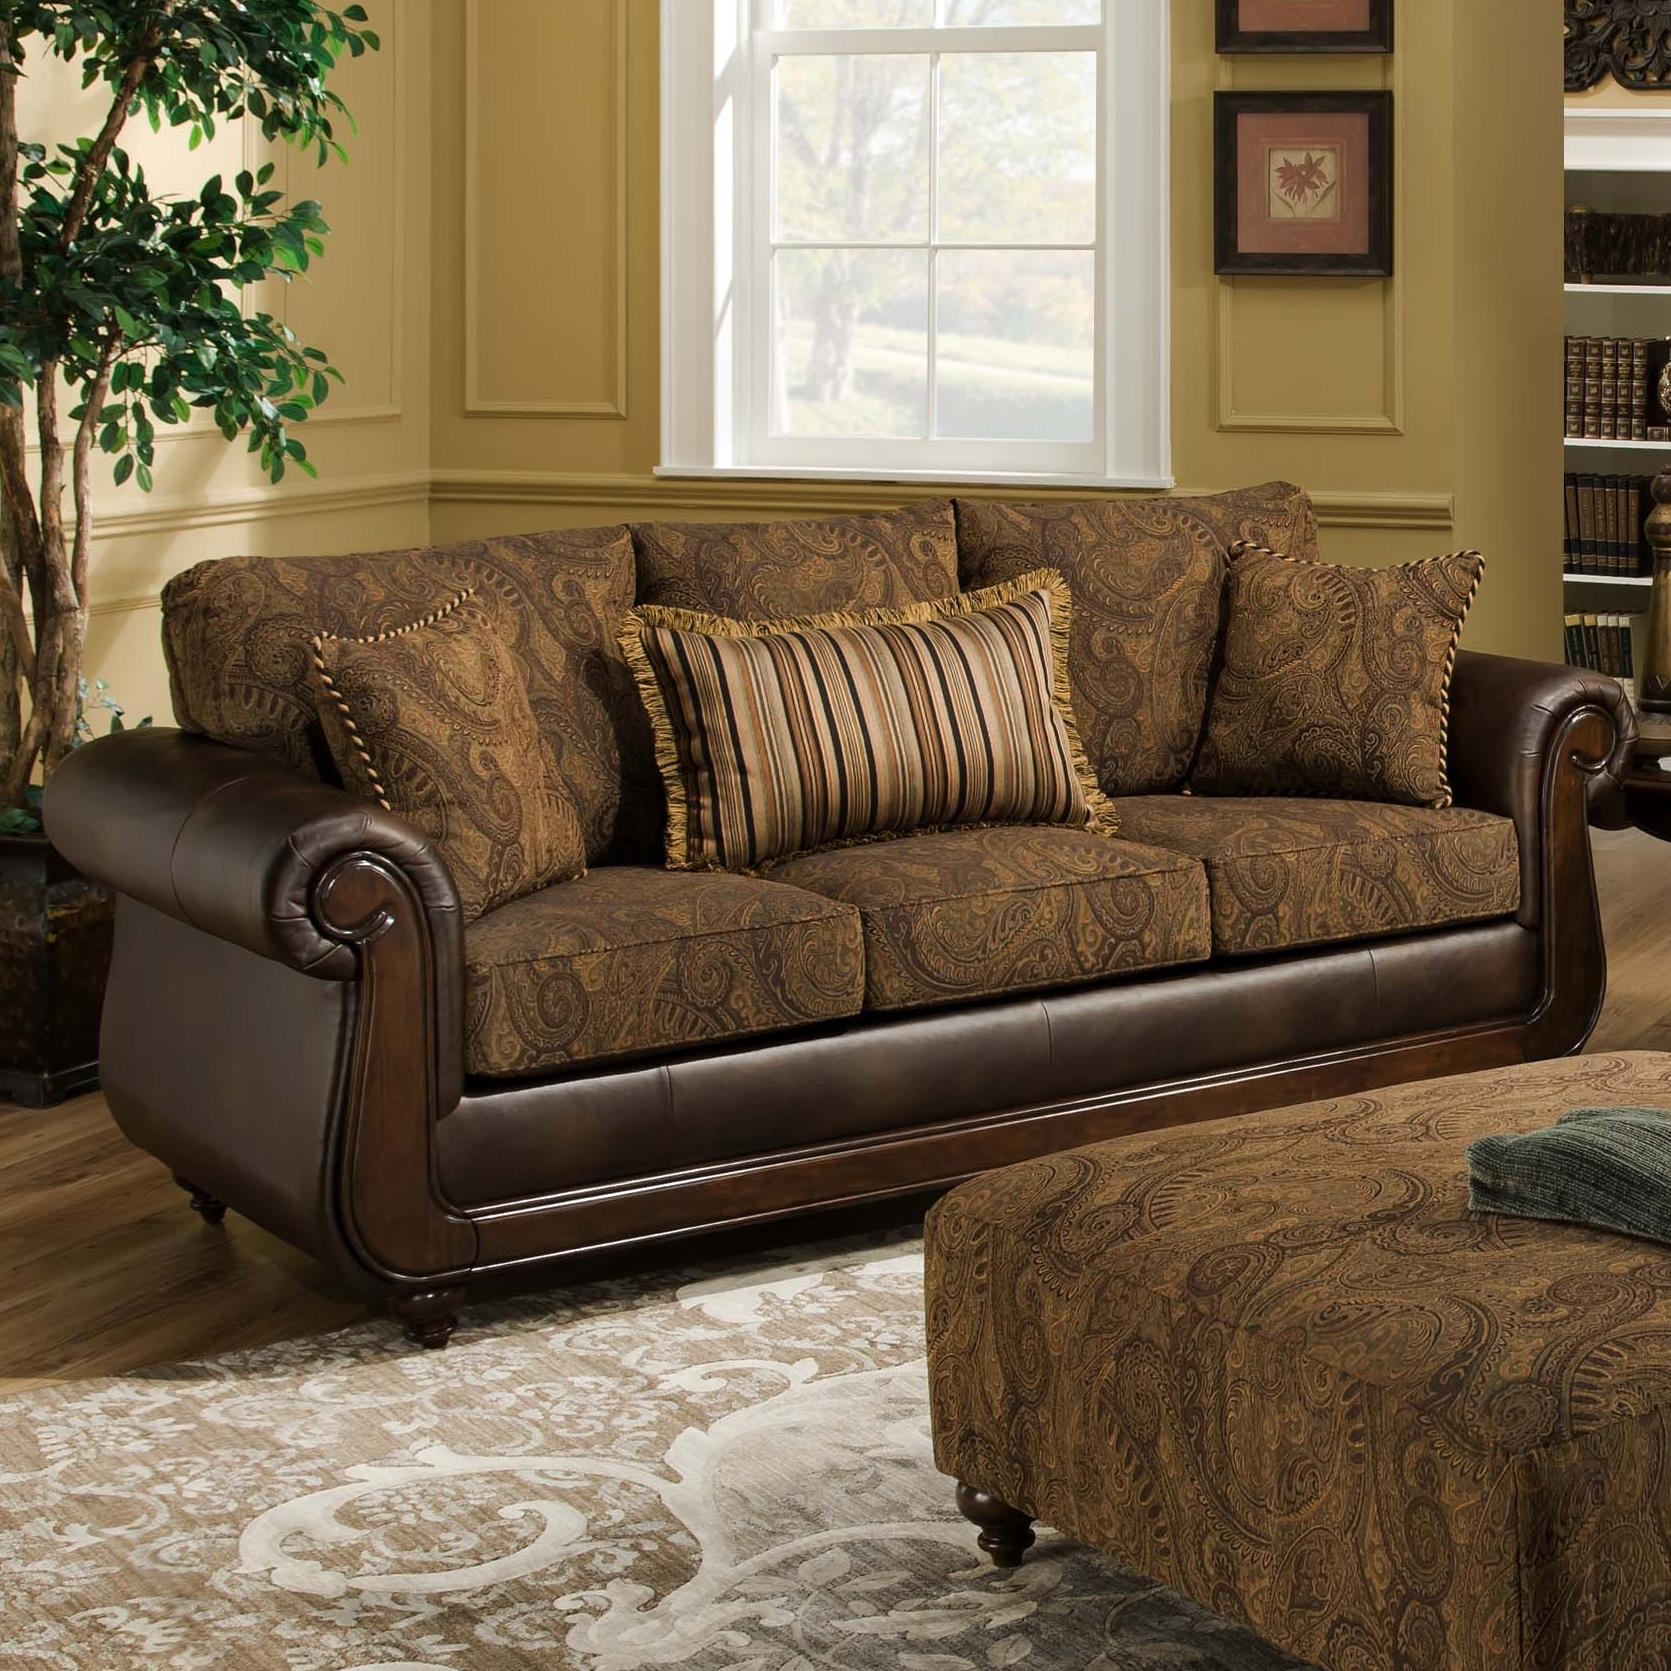 American Furniture 5850 5853 6370 Sofa With Exposed Wood In Clic Style Beck S